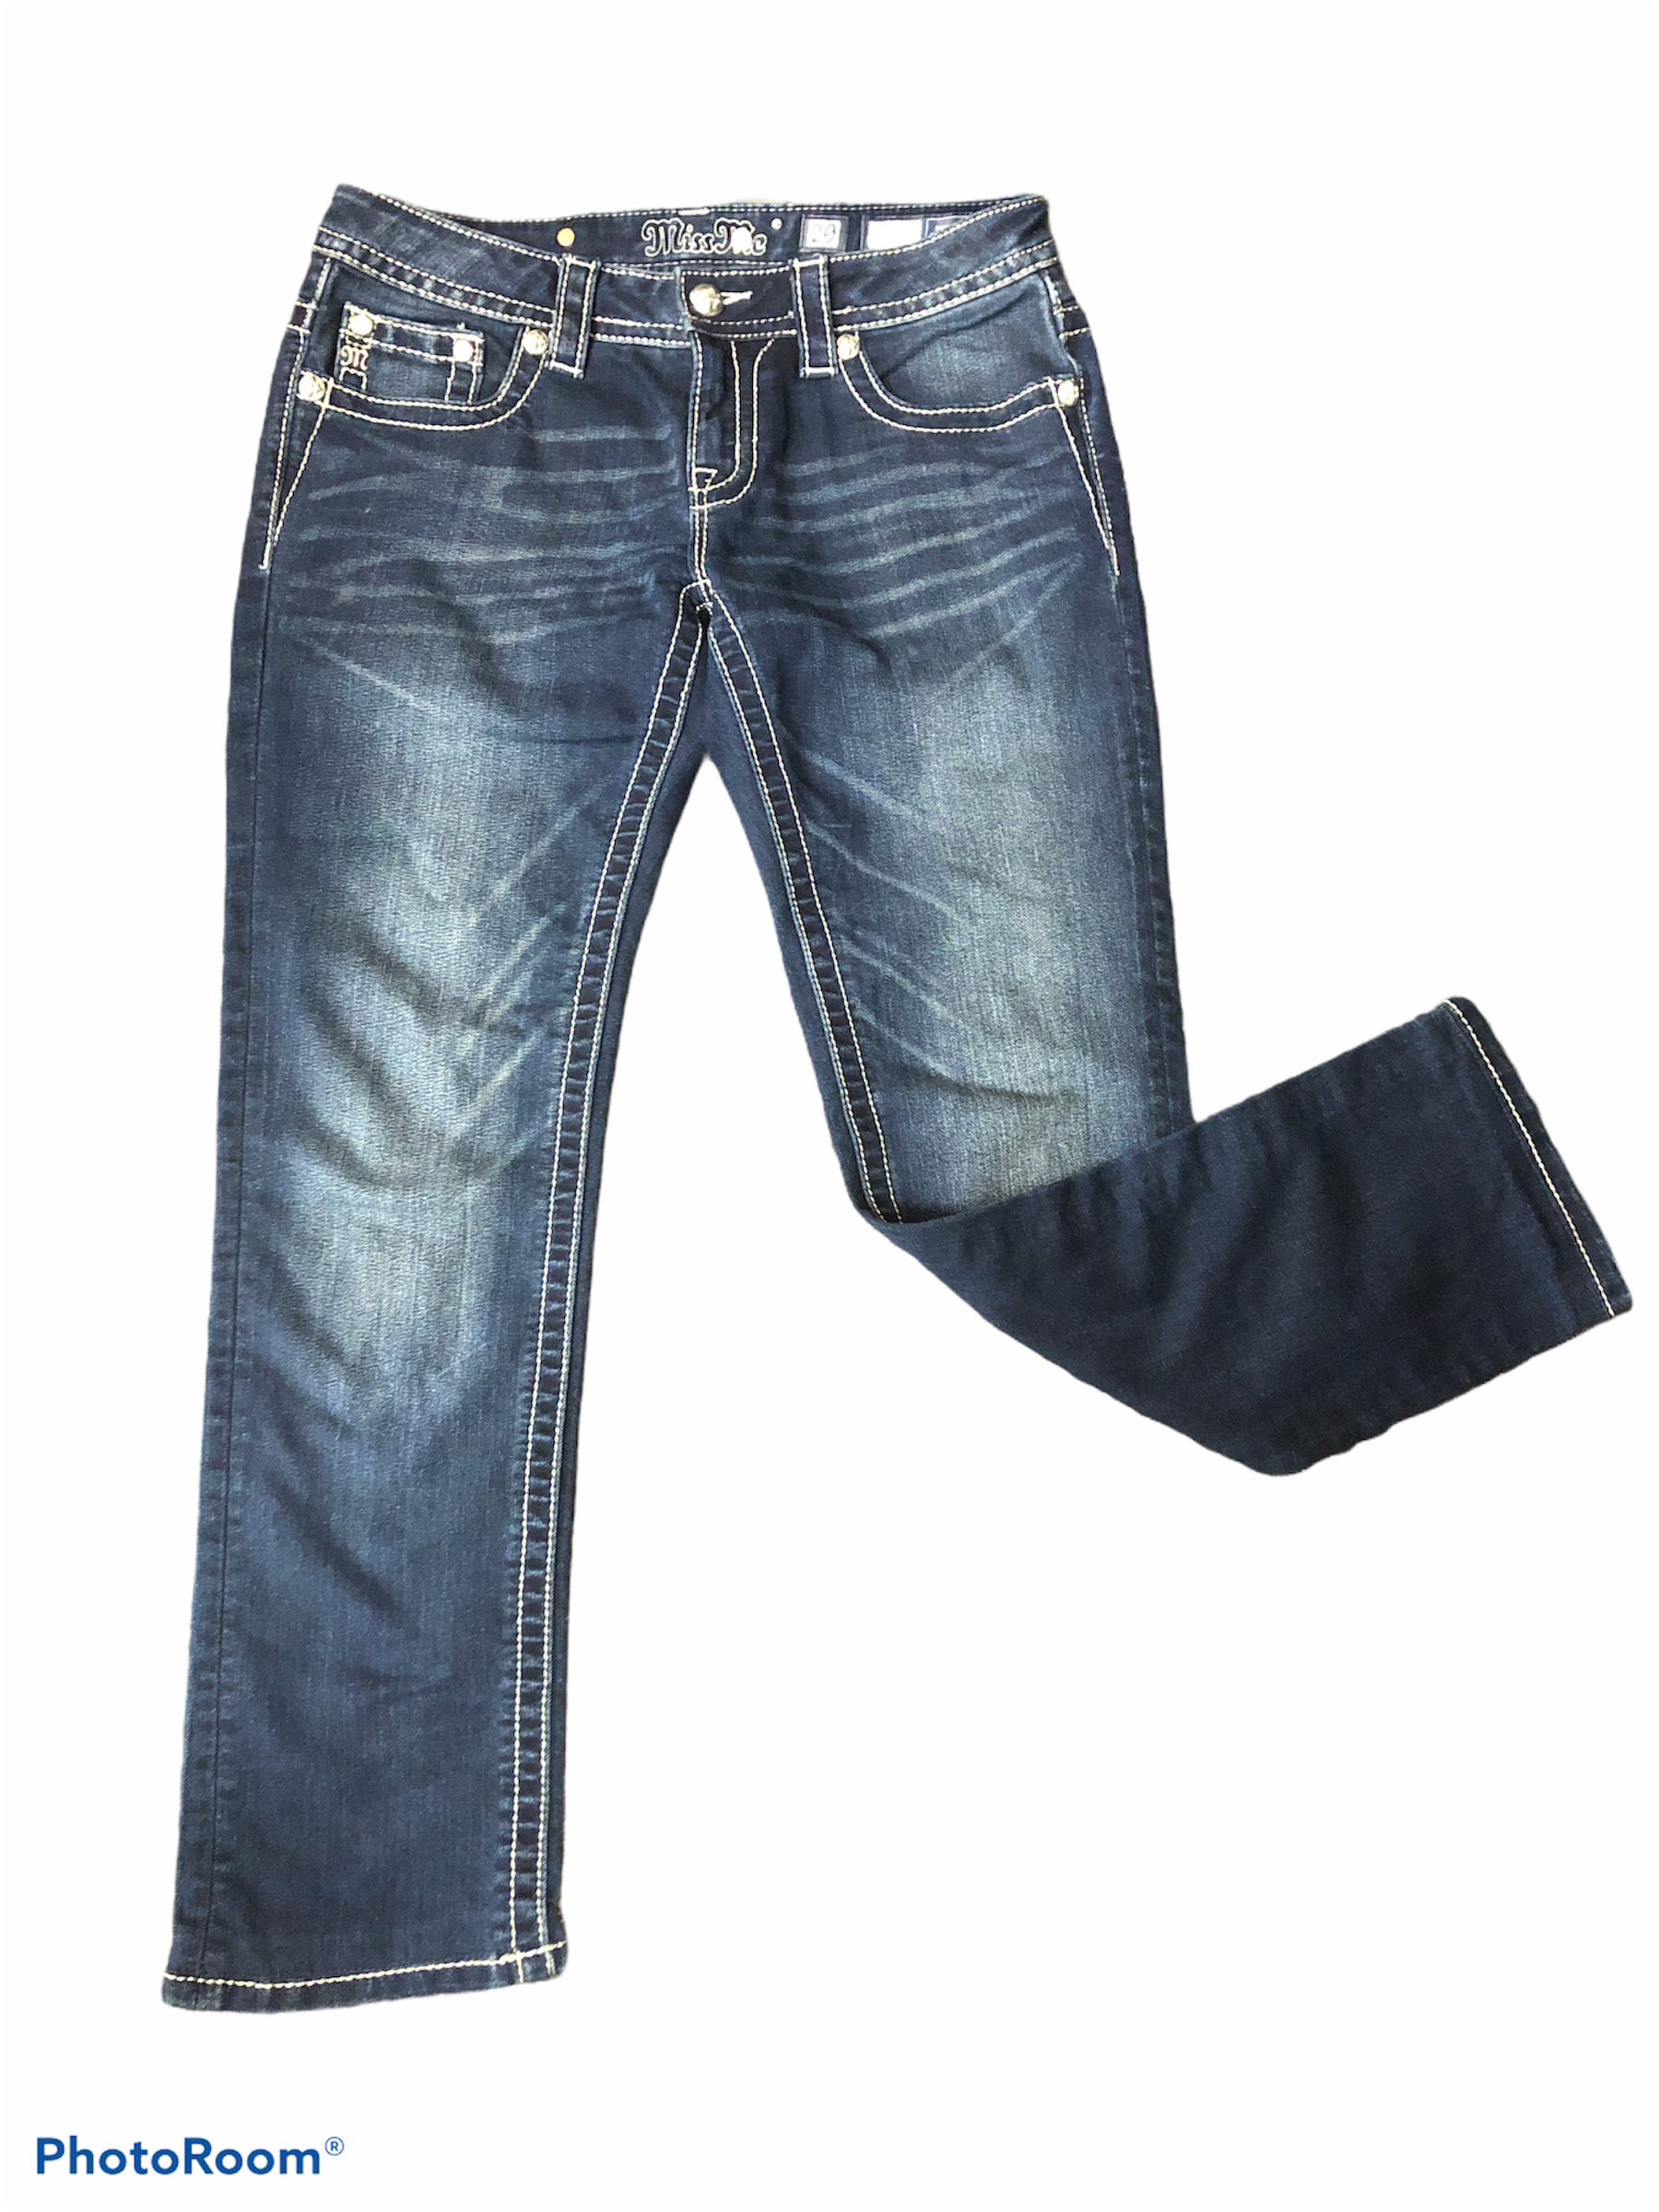 Primary Photo - BRAND: MISS ME <BR>STYLE: JEANS DESIGNER <BR>COLOR: DENIM <BR>SIZE: 6 <BR>SKU: 206-20693-4529